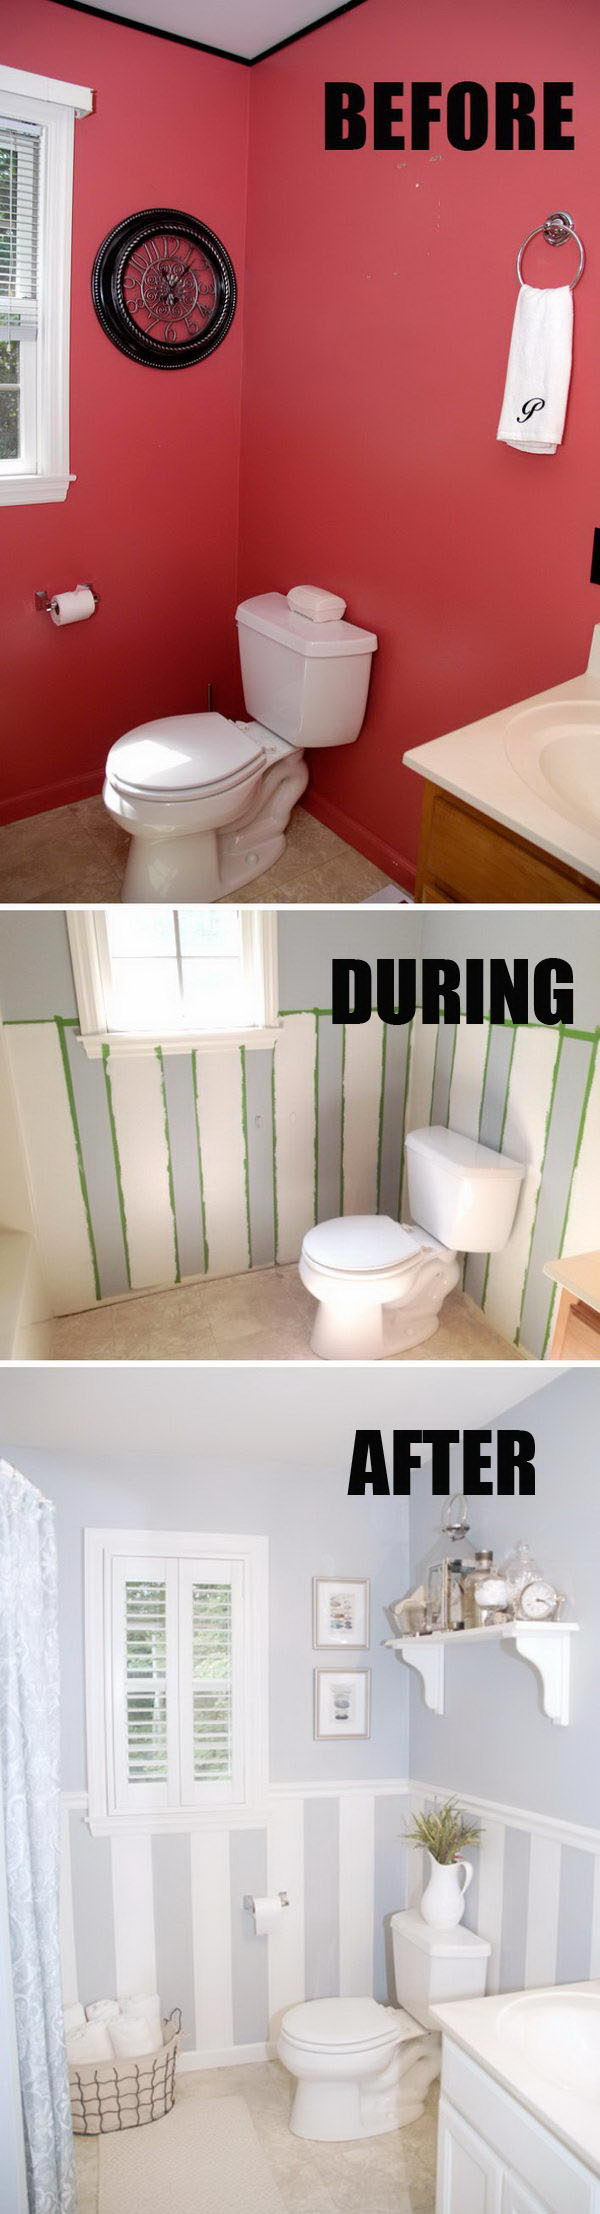 Painted Bathroom Makeover With DIY Wall Stripes.